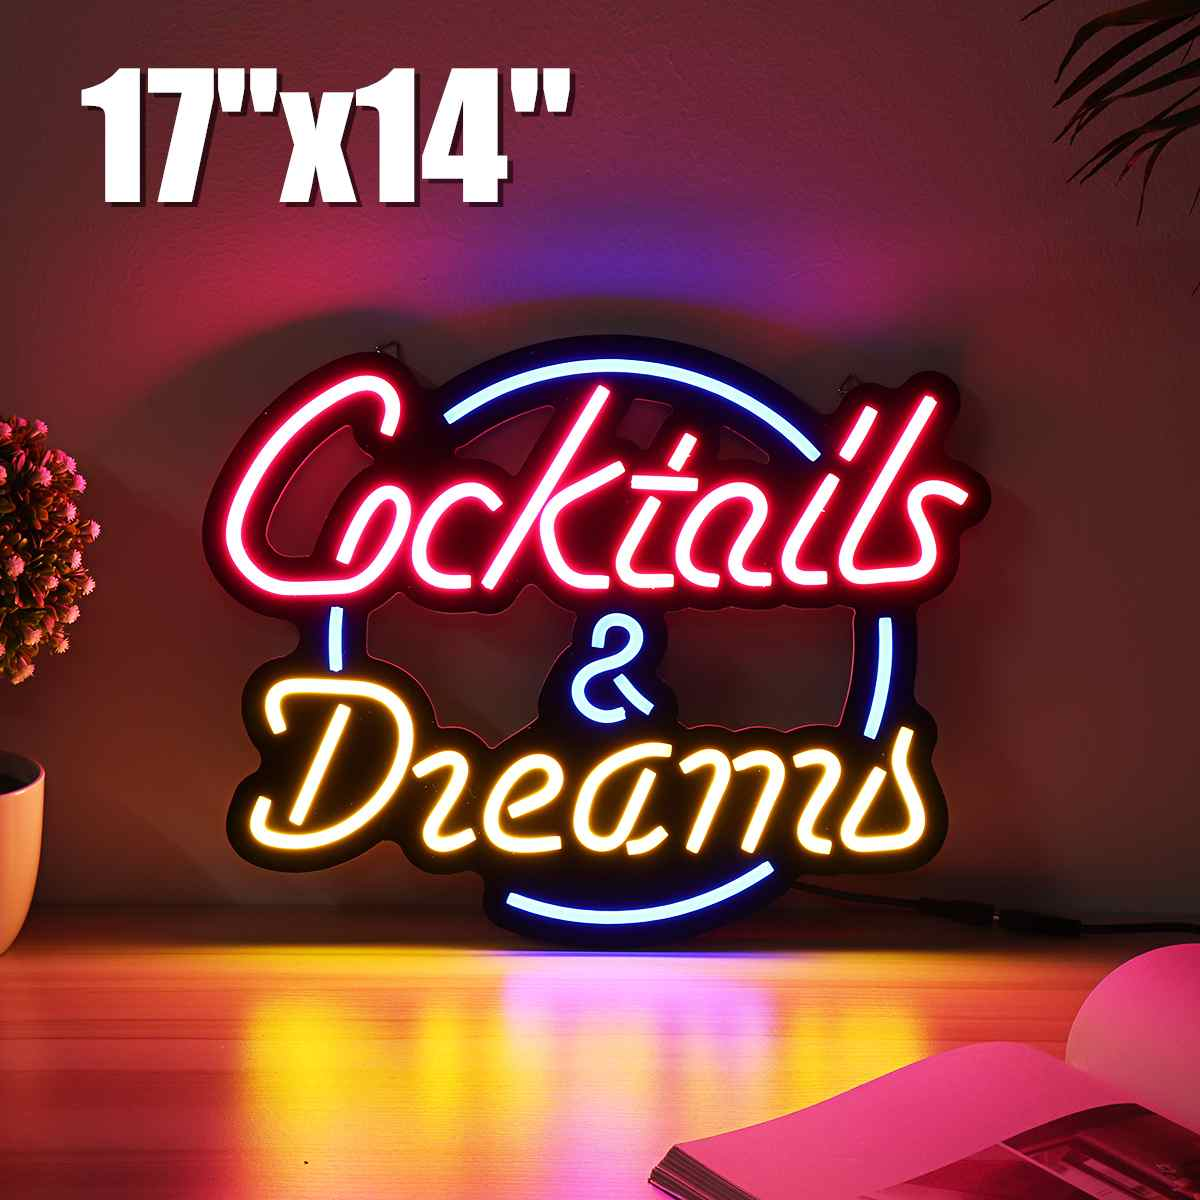 17x14 Cocktail Dream Real Glass Tube Neon Light Sign Tavern Beer Bar Pub Decoration Neon Lamp Board Commercial Lighting image